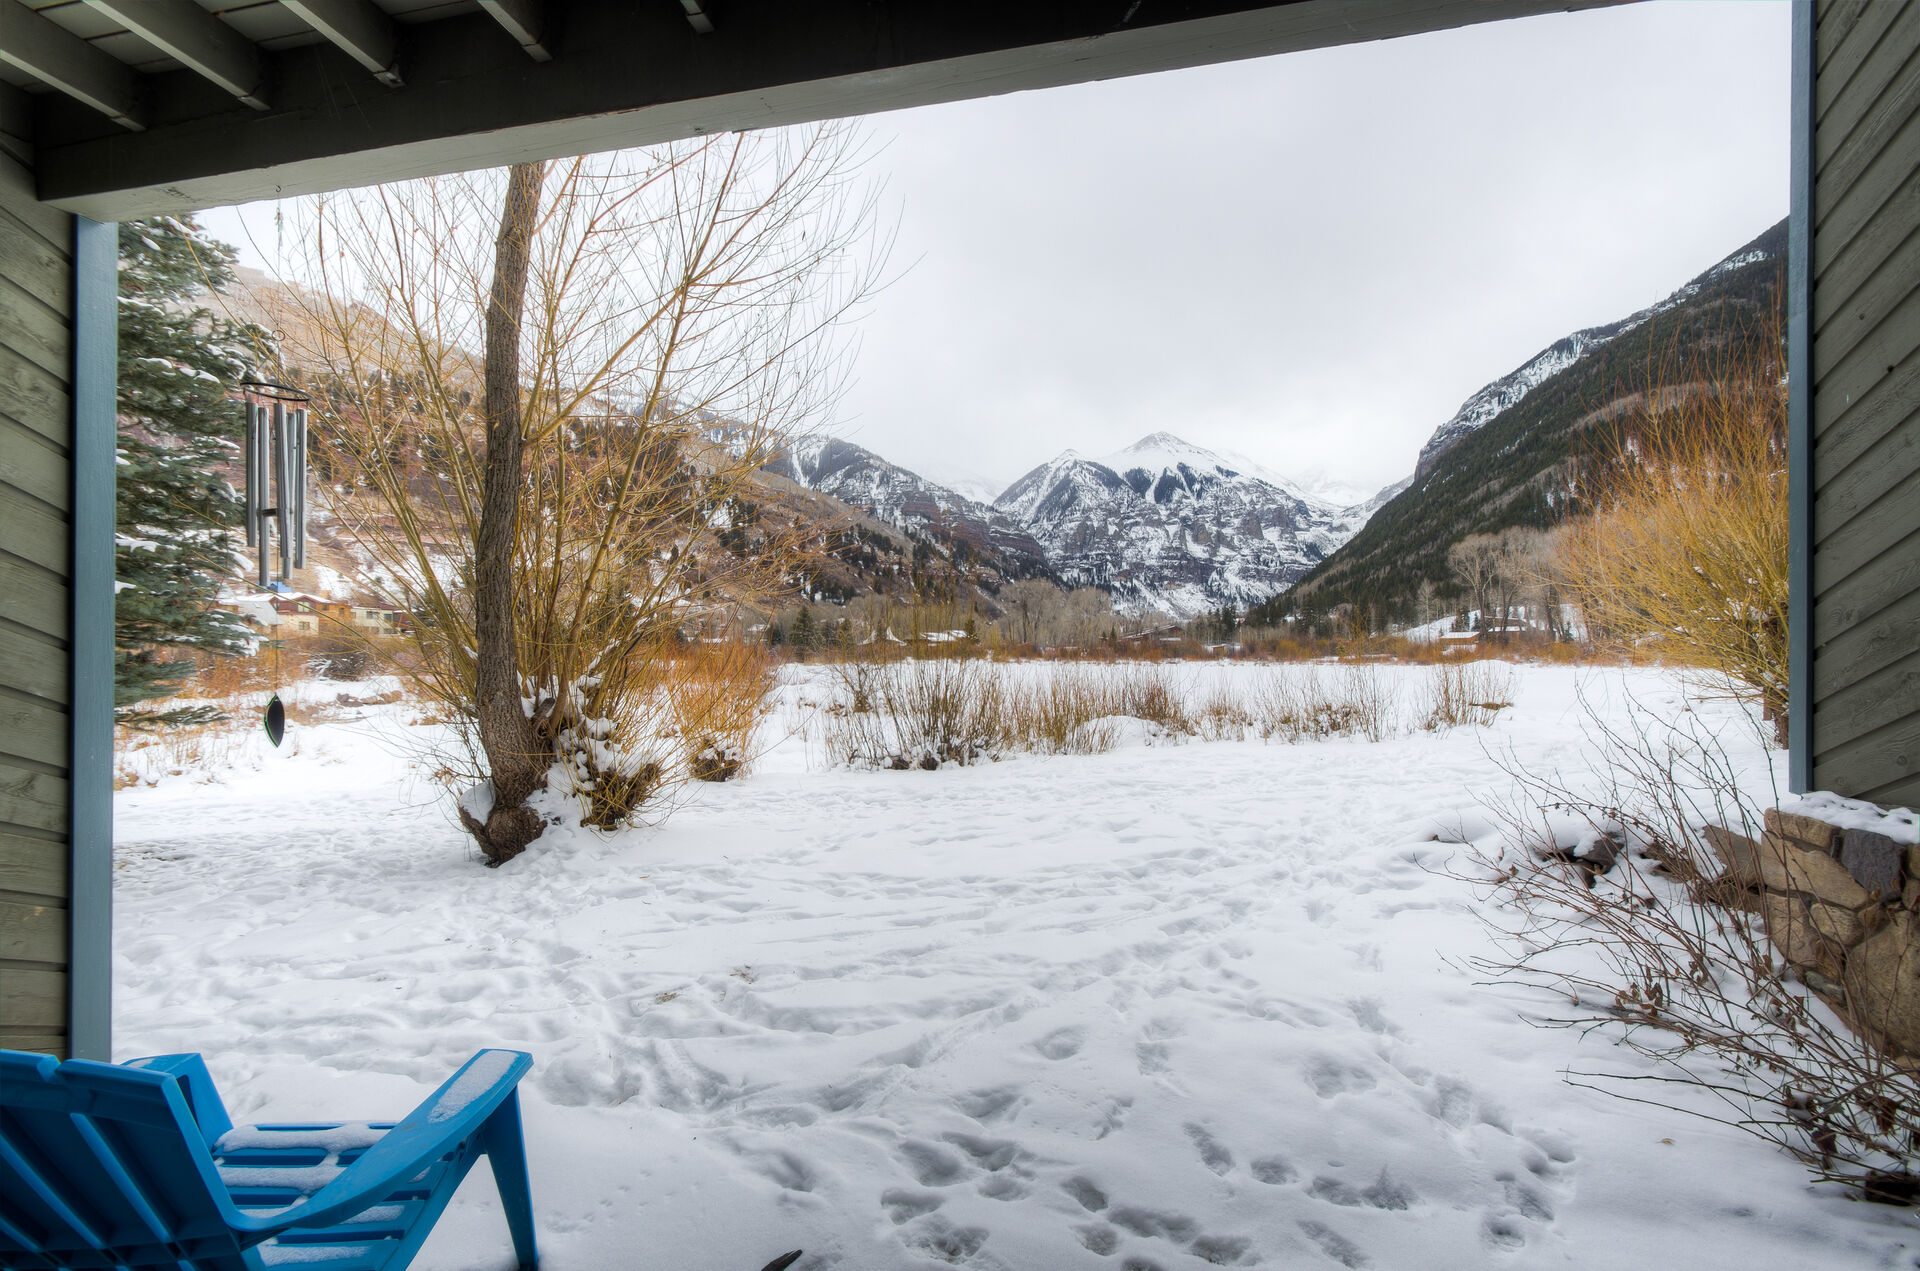 Snowy View from the Patio of the Buena Vista at Riverside Condo